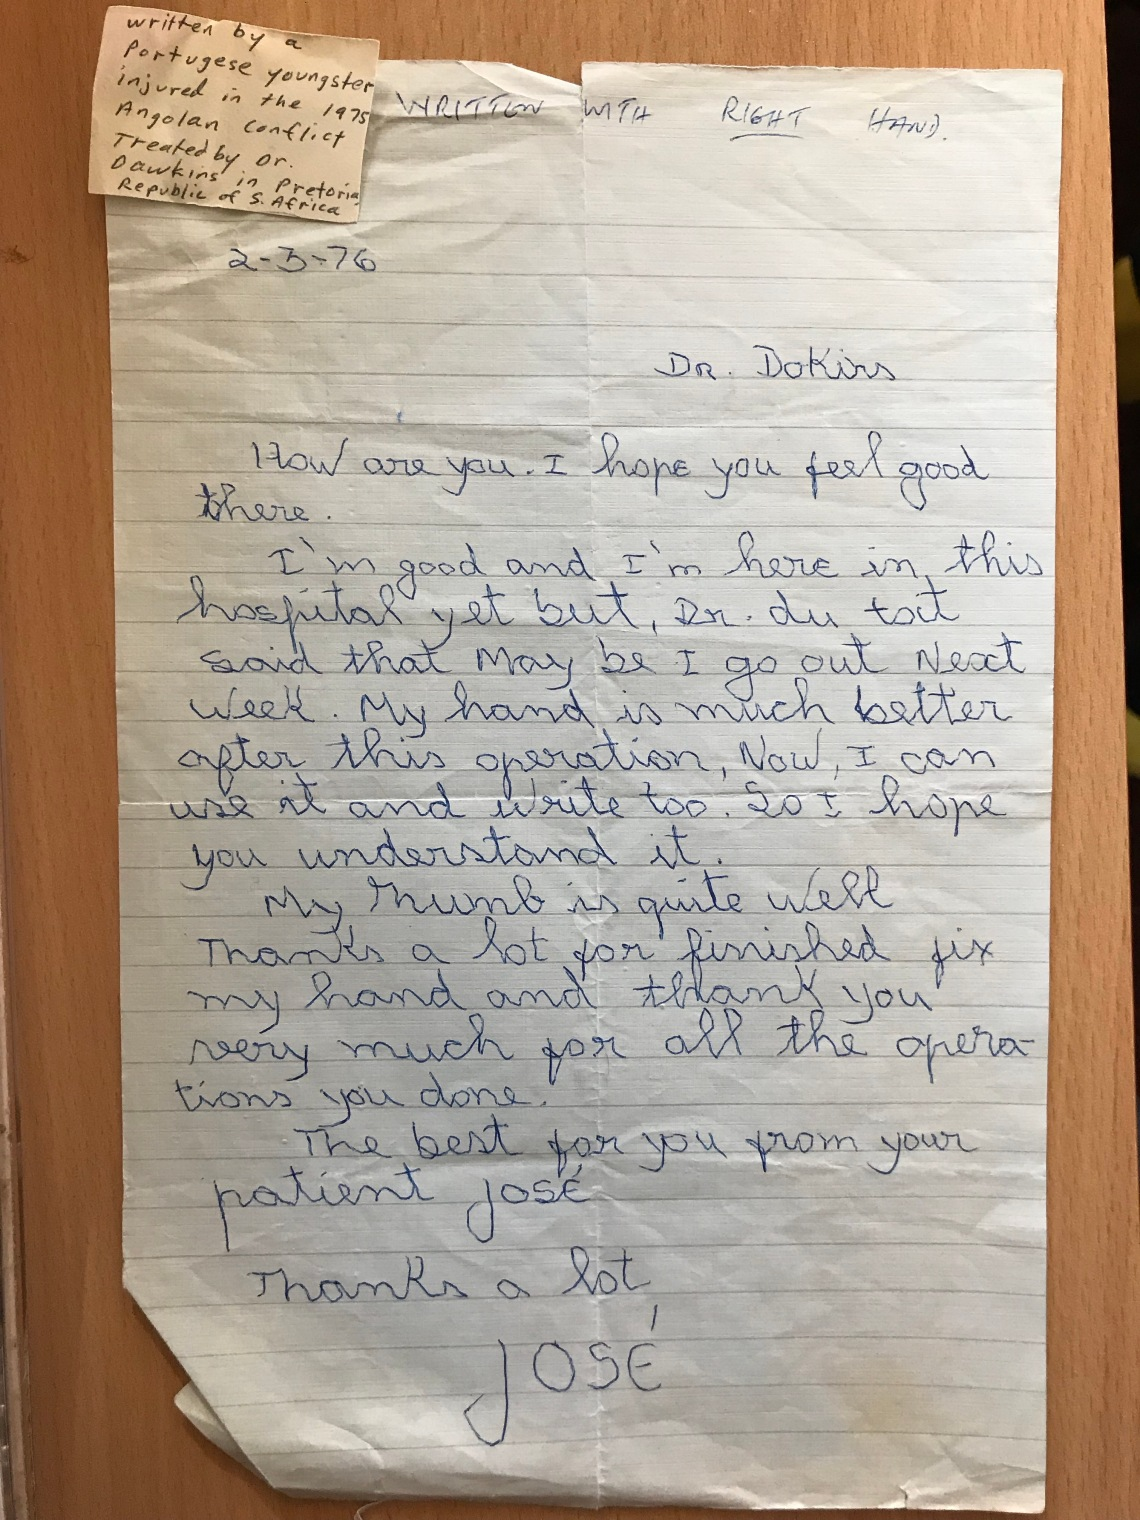 Letter from a Portuguese patient to Dr. Dawkins after being treated from injuries sustained in the Angolan conflict (1975).